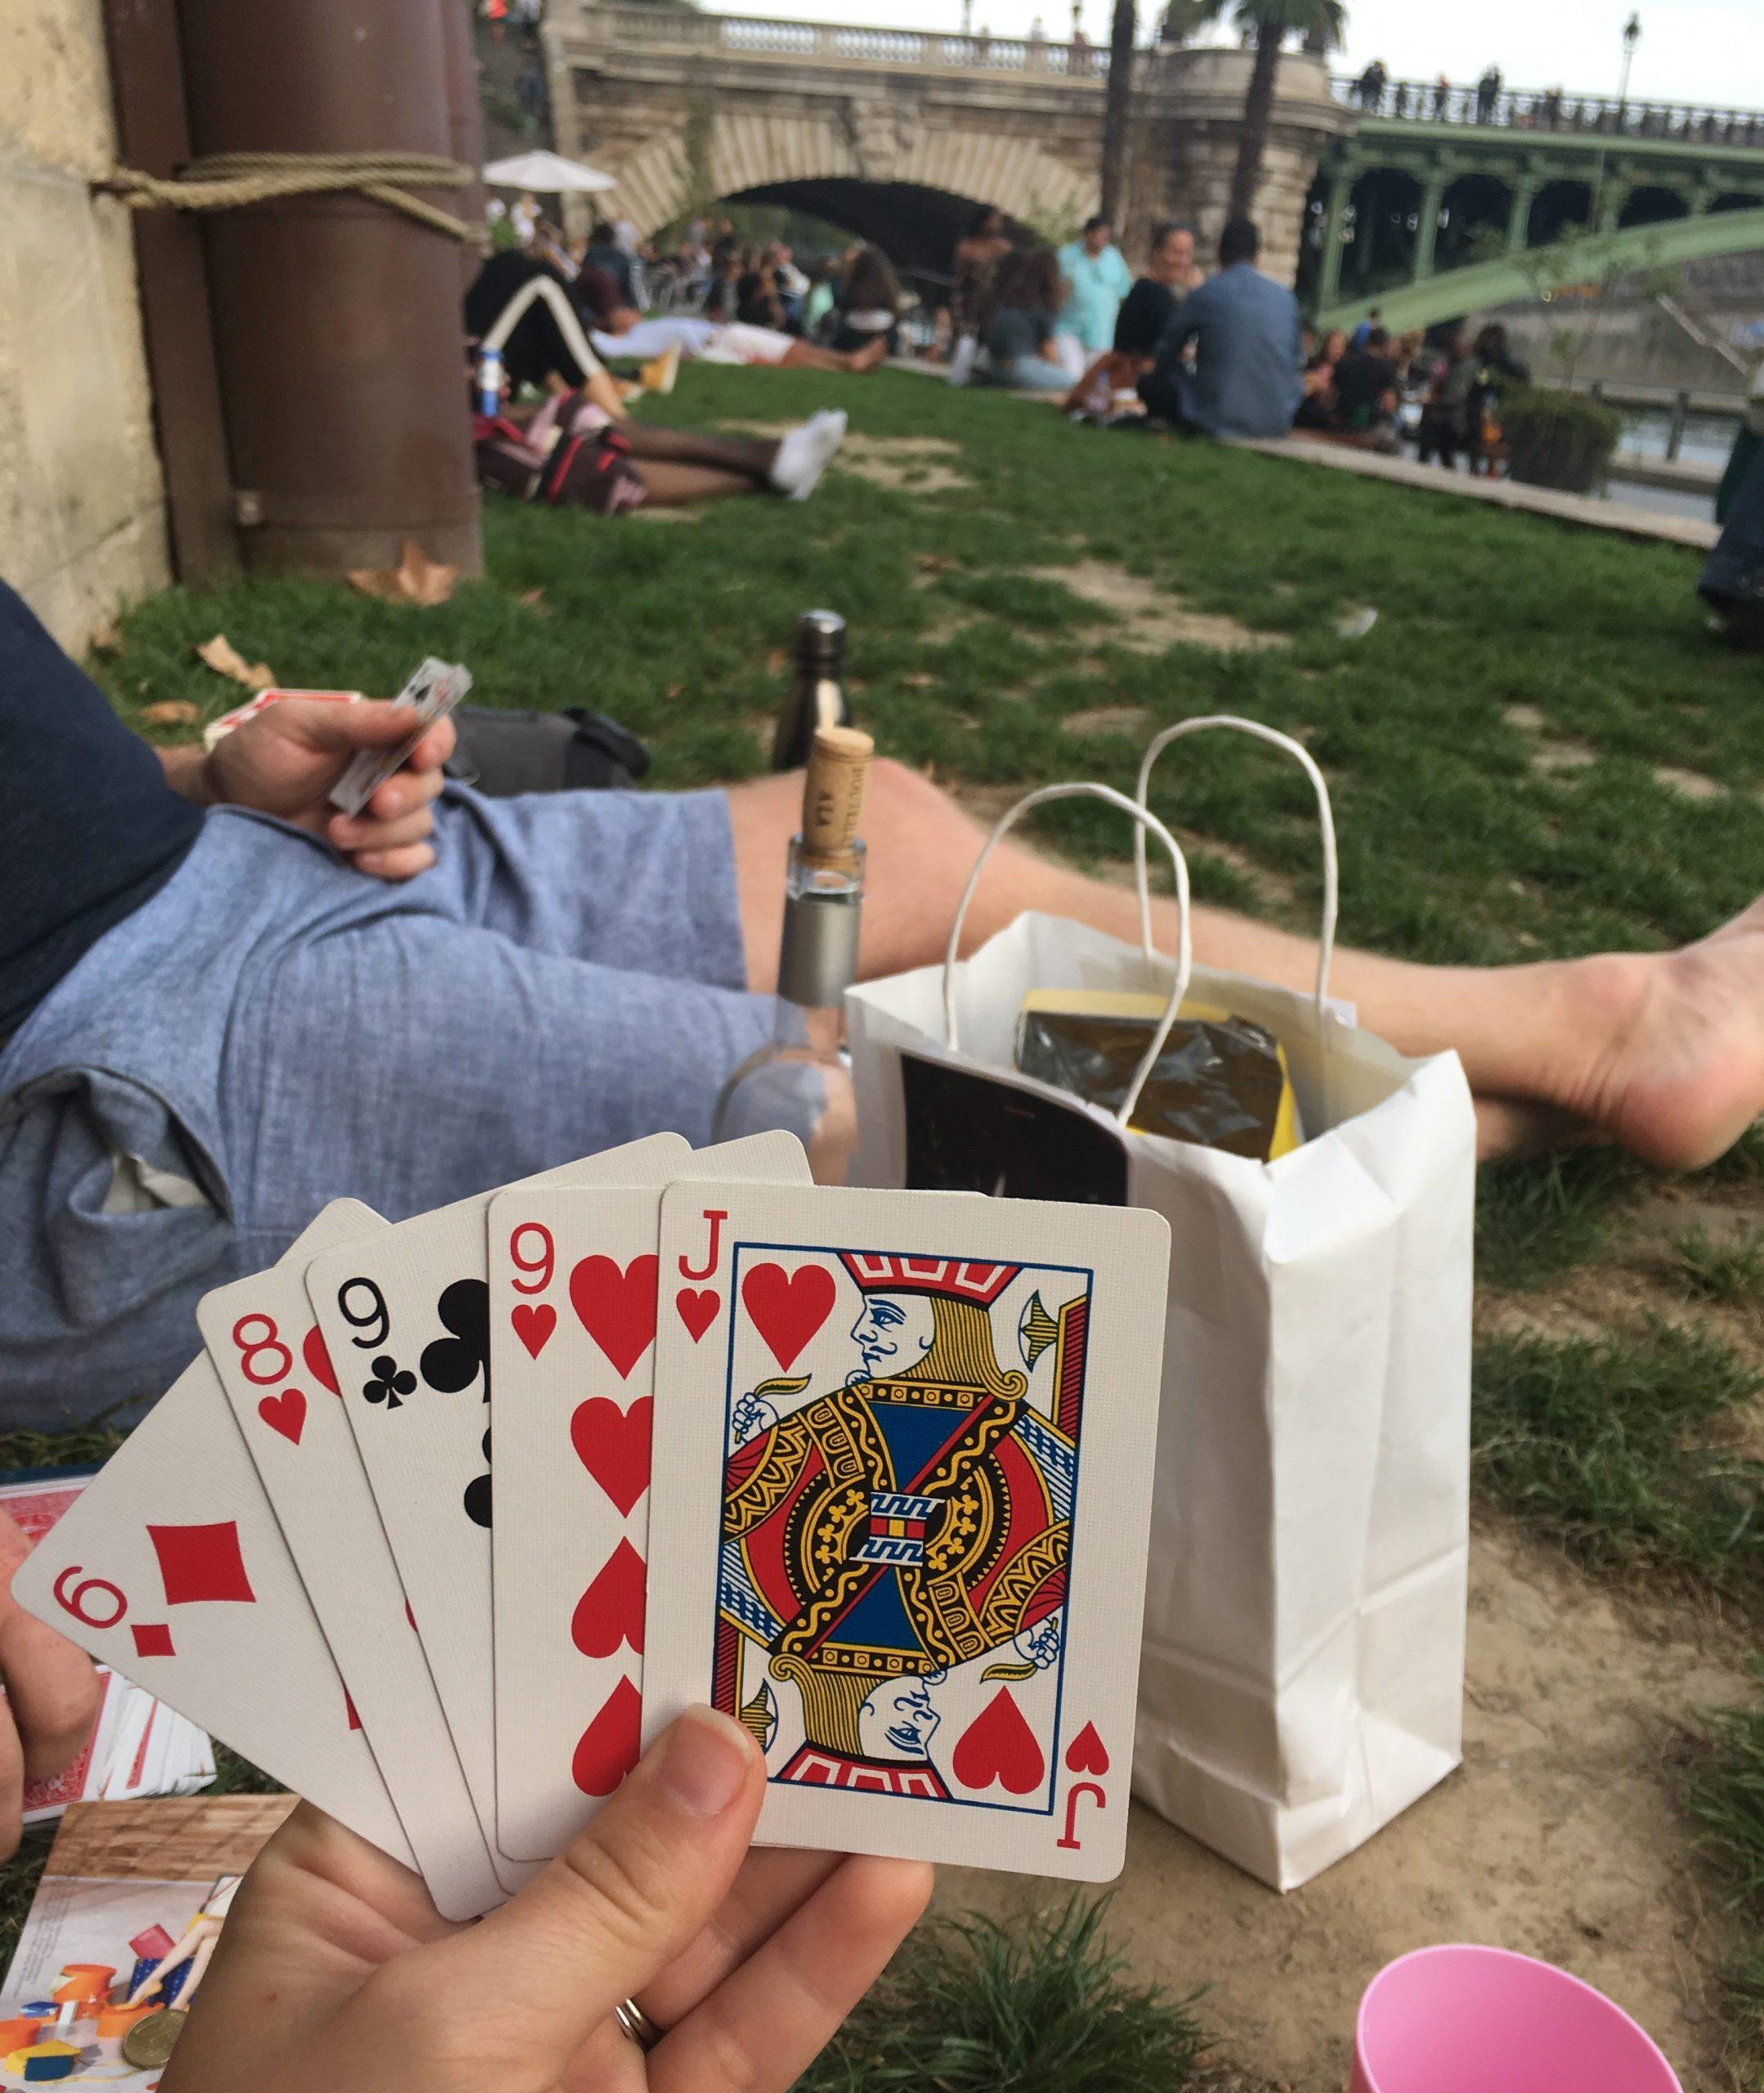 """By the seine river playing cards with wine and eating savory crêpes au Fromage or """"Crepe with cheese"""""""